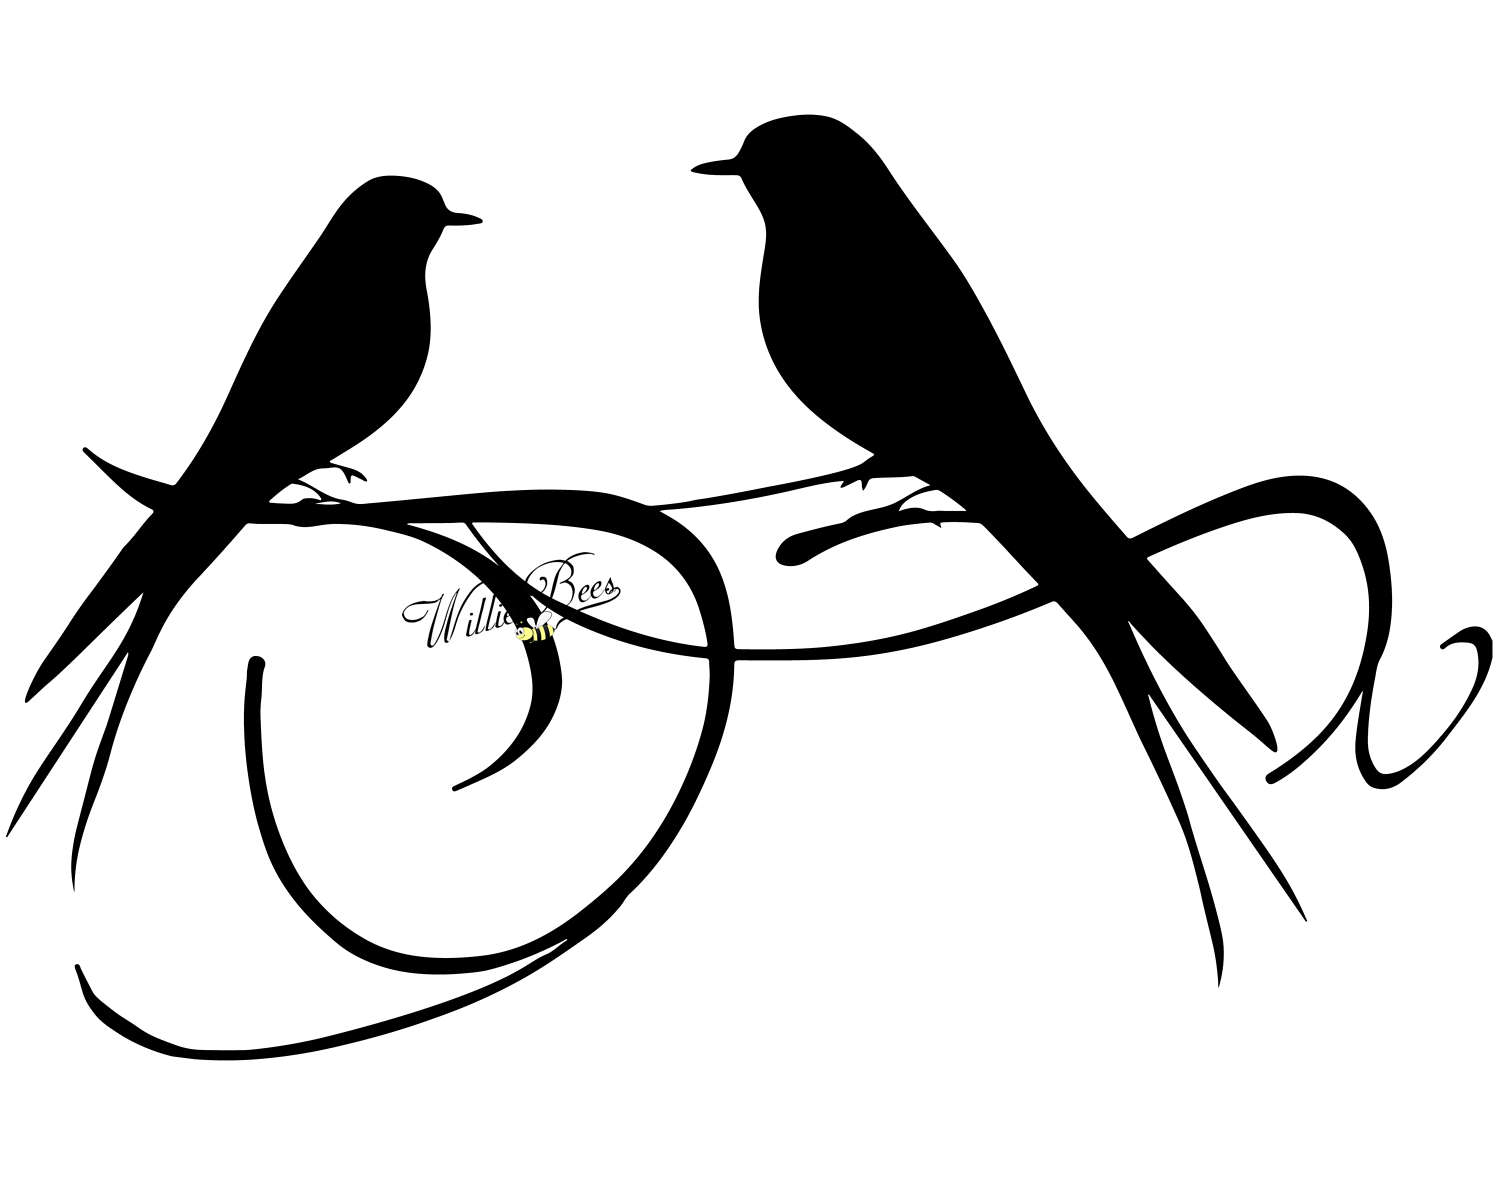 love birds silhouette clip art at getdrawings com free for rh getdrawings com free lovebird clipart love bird tree clipart